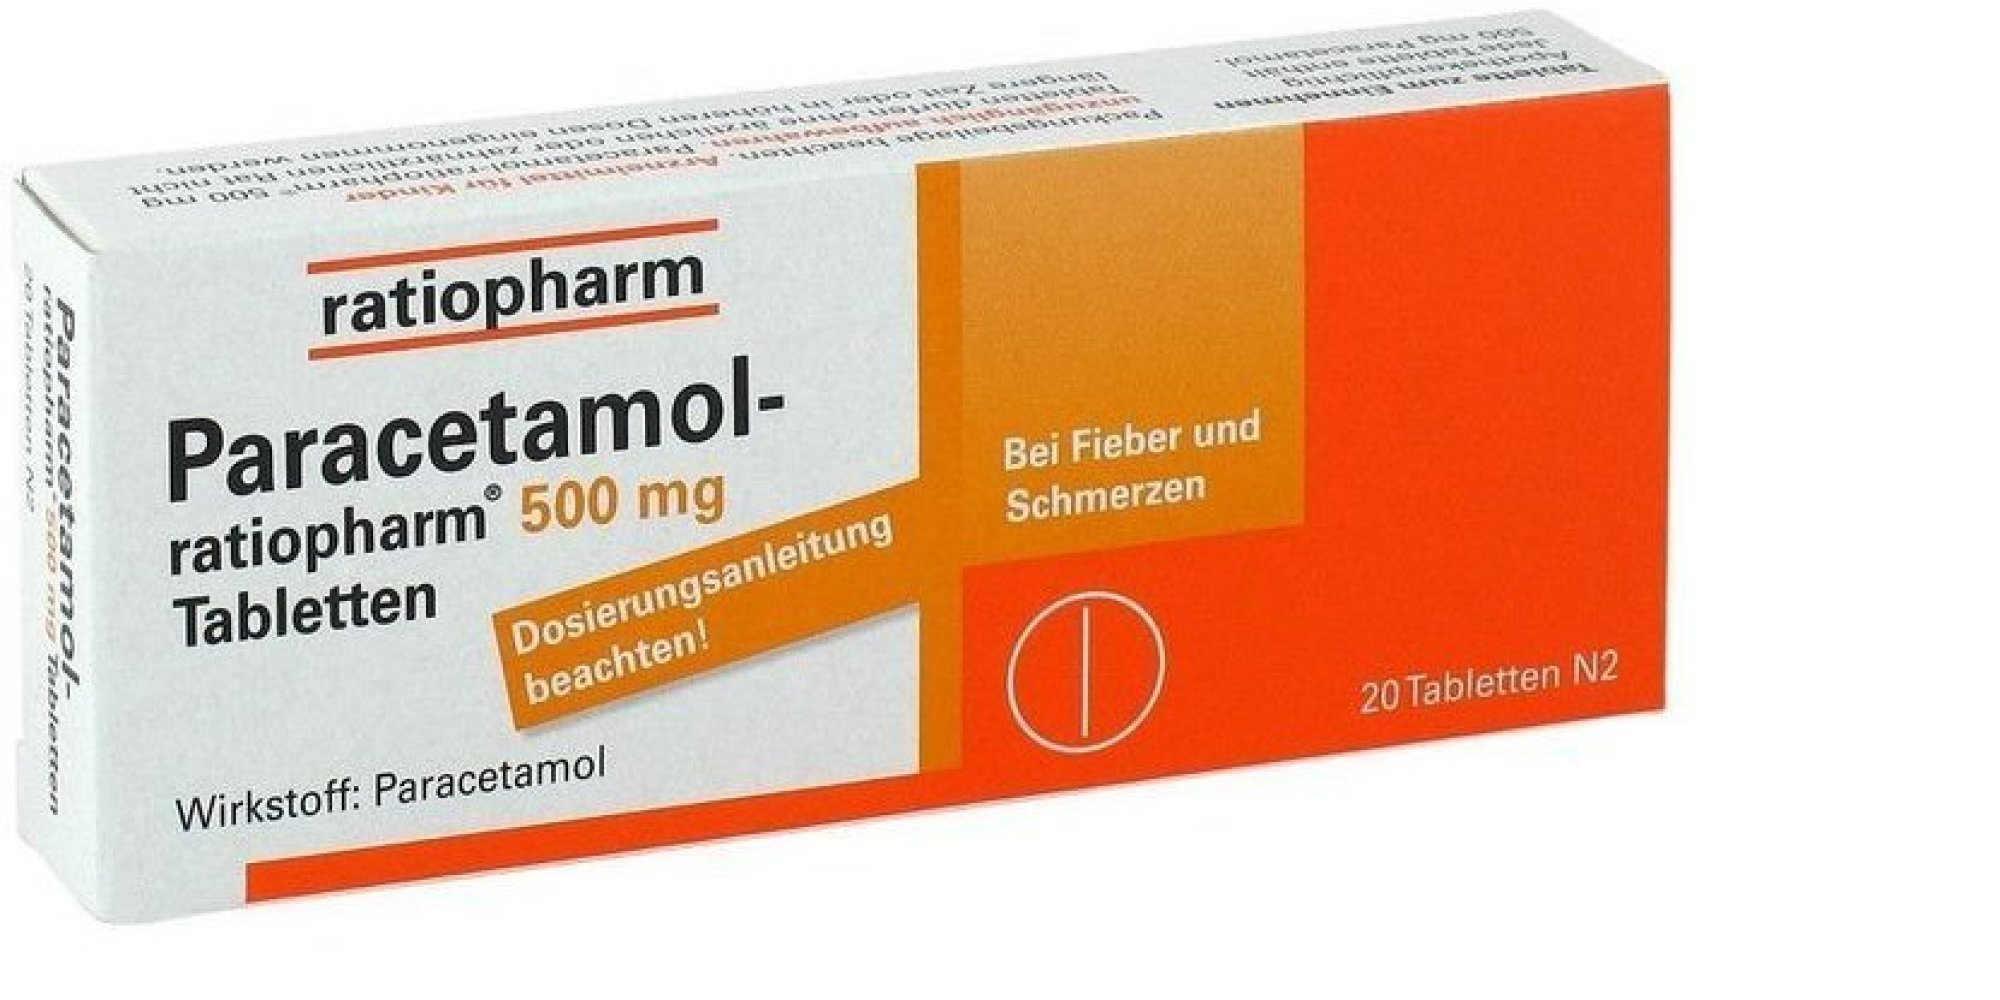 Paracetamol | www.pixshark.com - Images Galleries With A Bite!